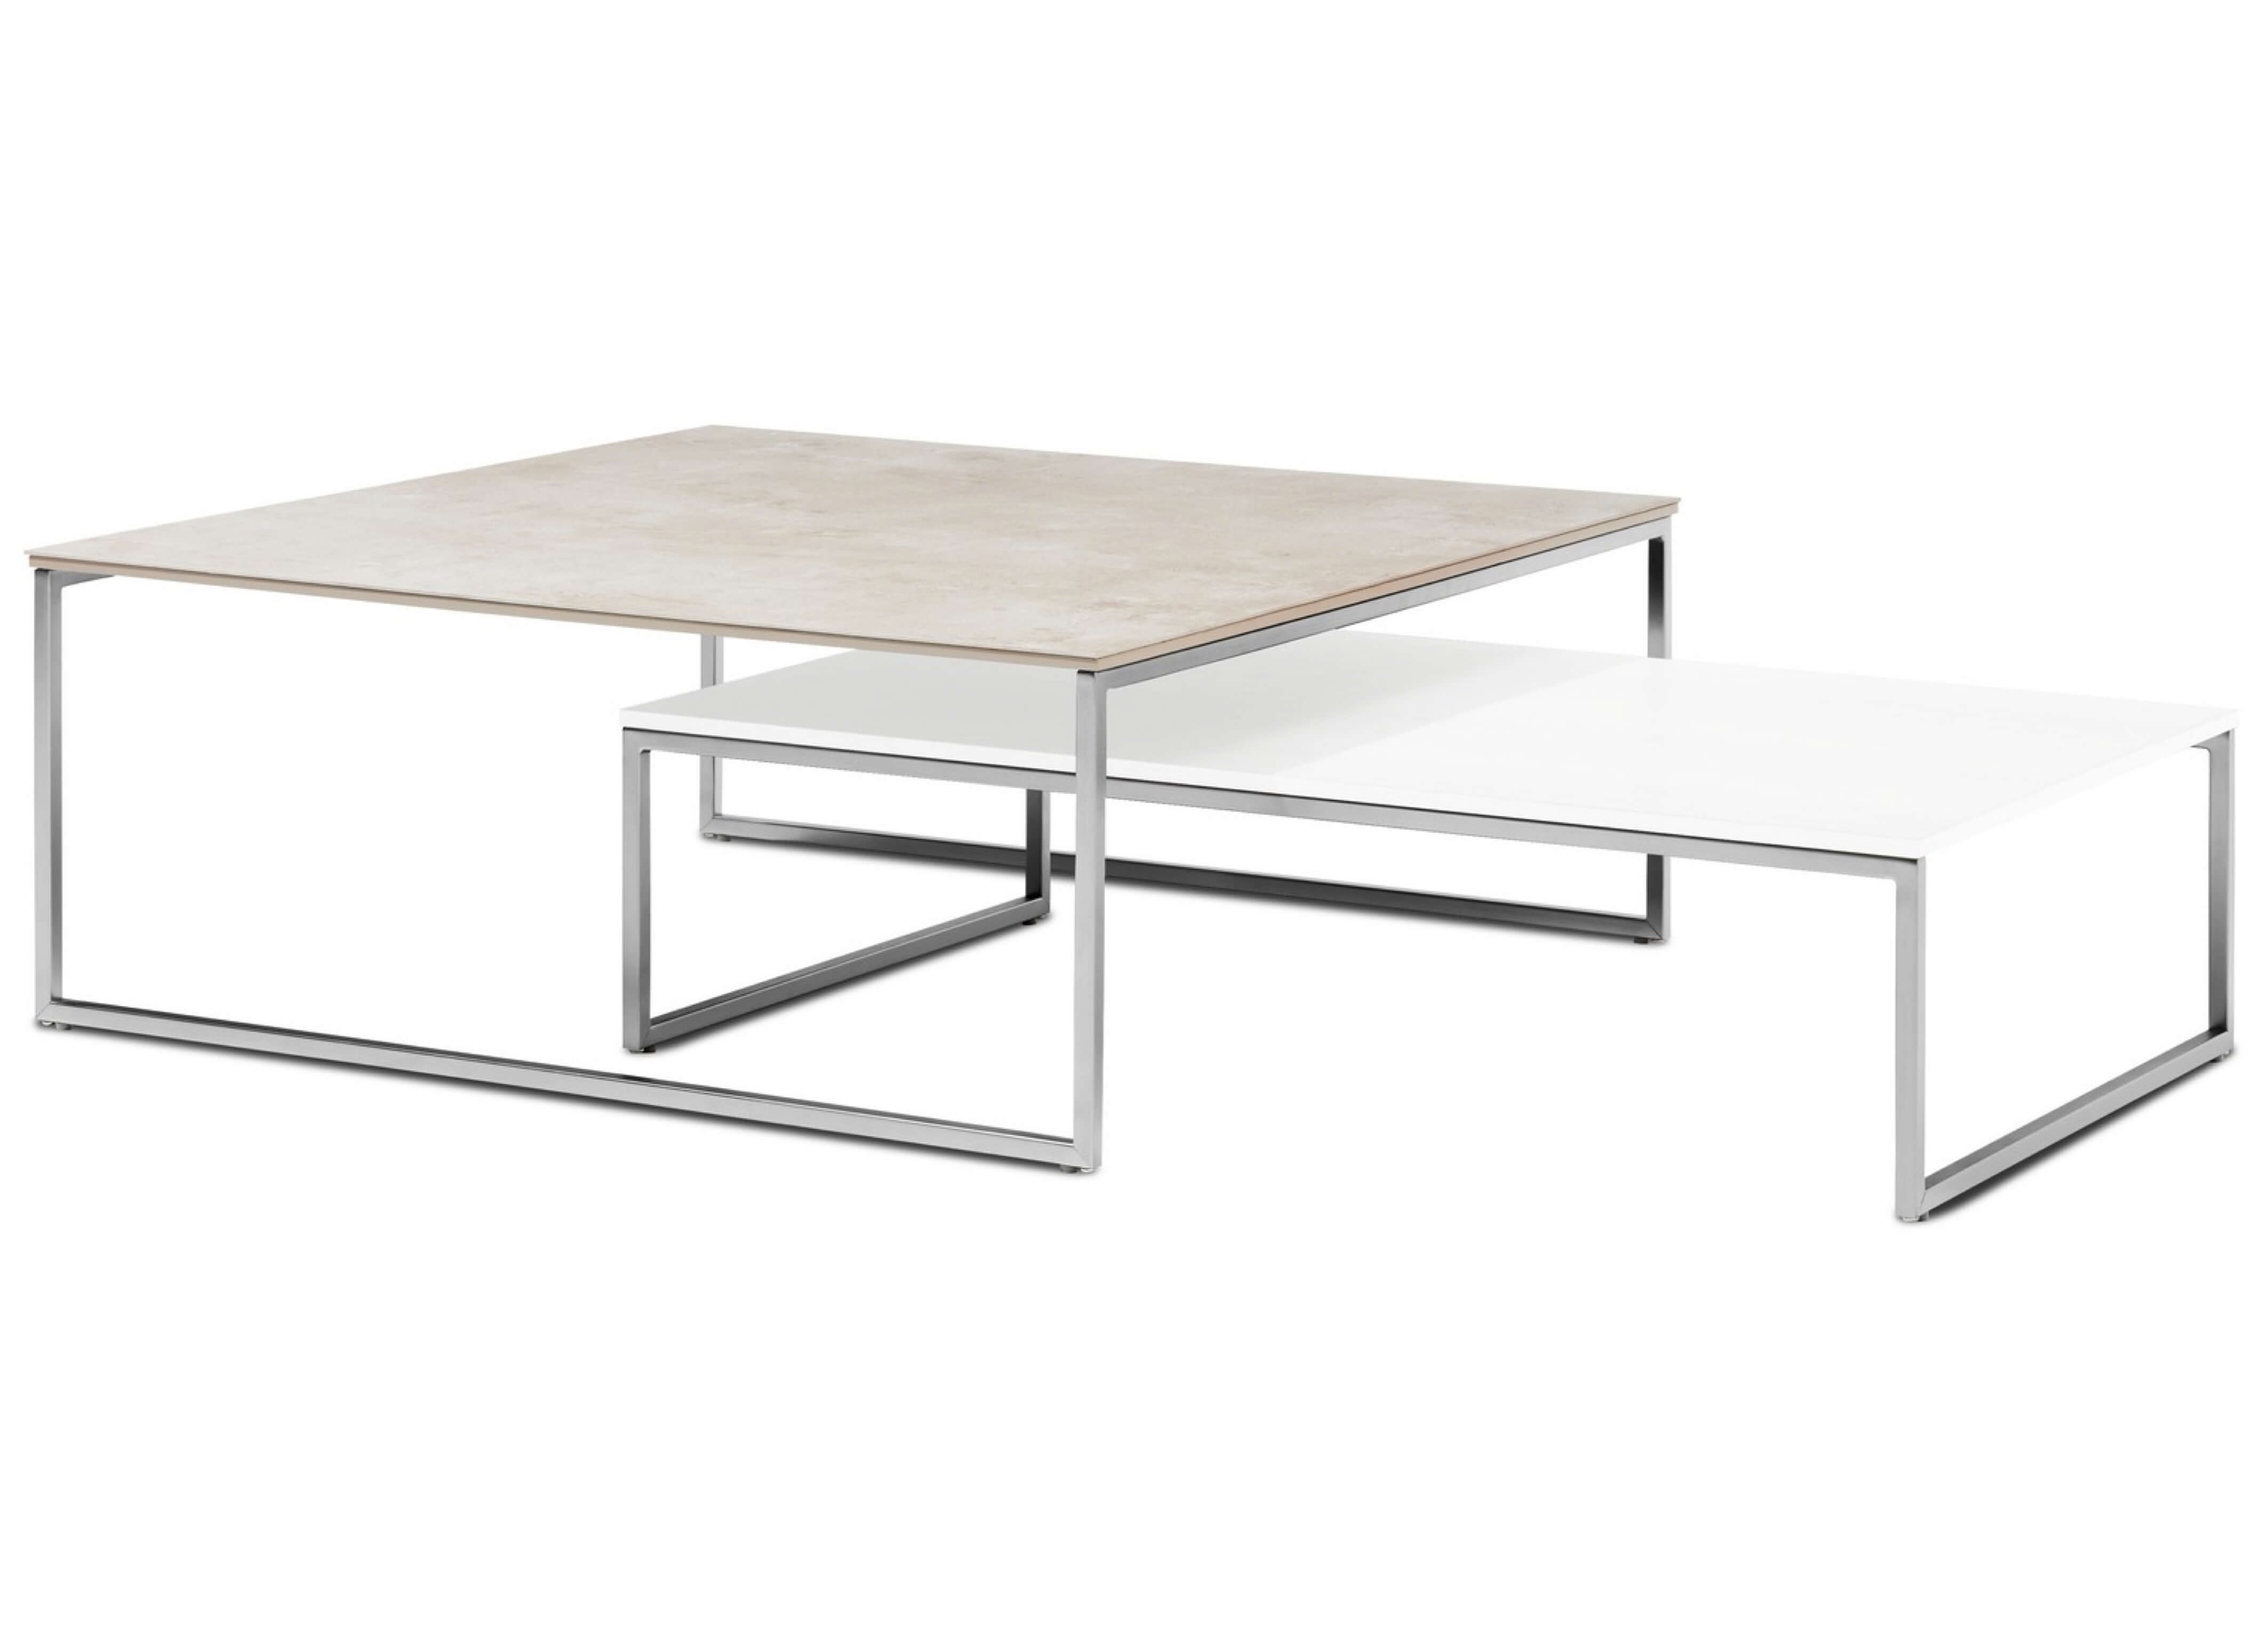 Lugo coffee table by boconcept est living design directory for Table basse bo concept